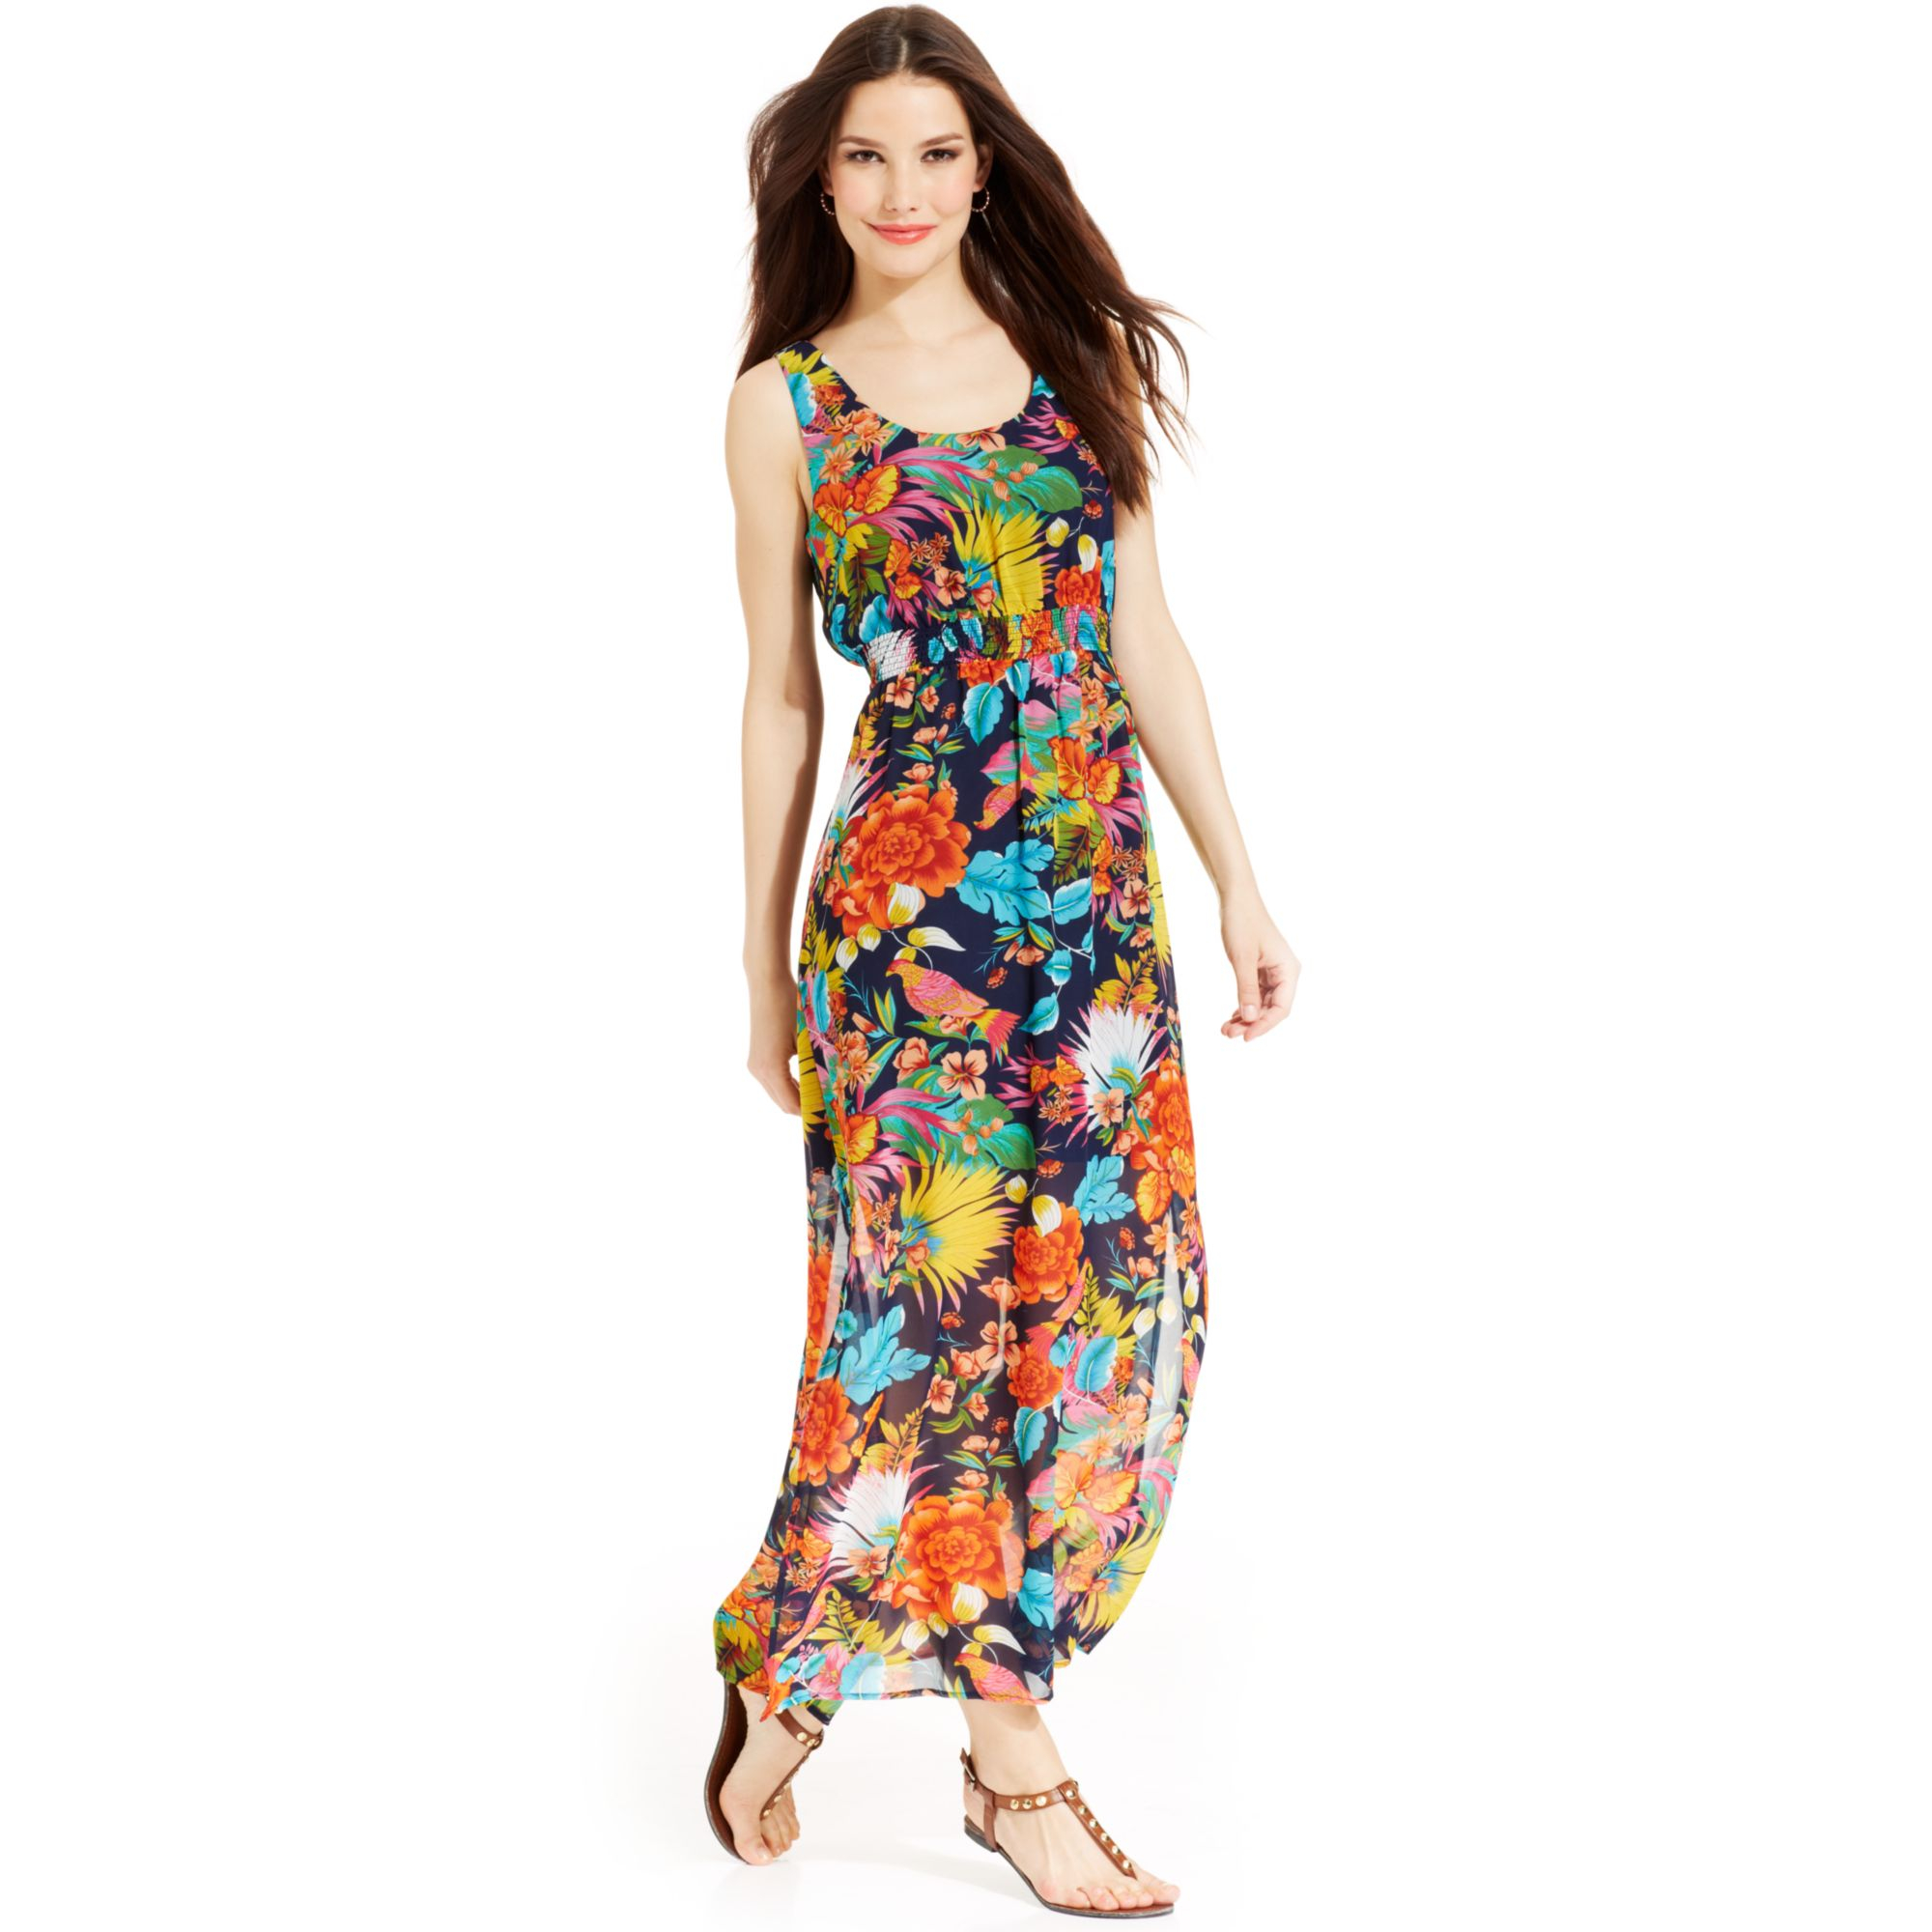 425c112c324 Lyst - Spense Petite Sleeveless Floralprint Empirewaist Maxi Dress